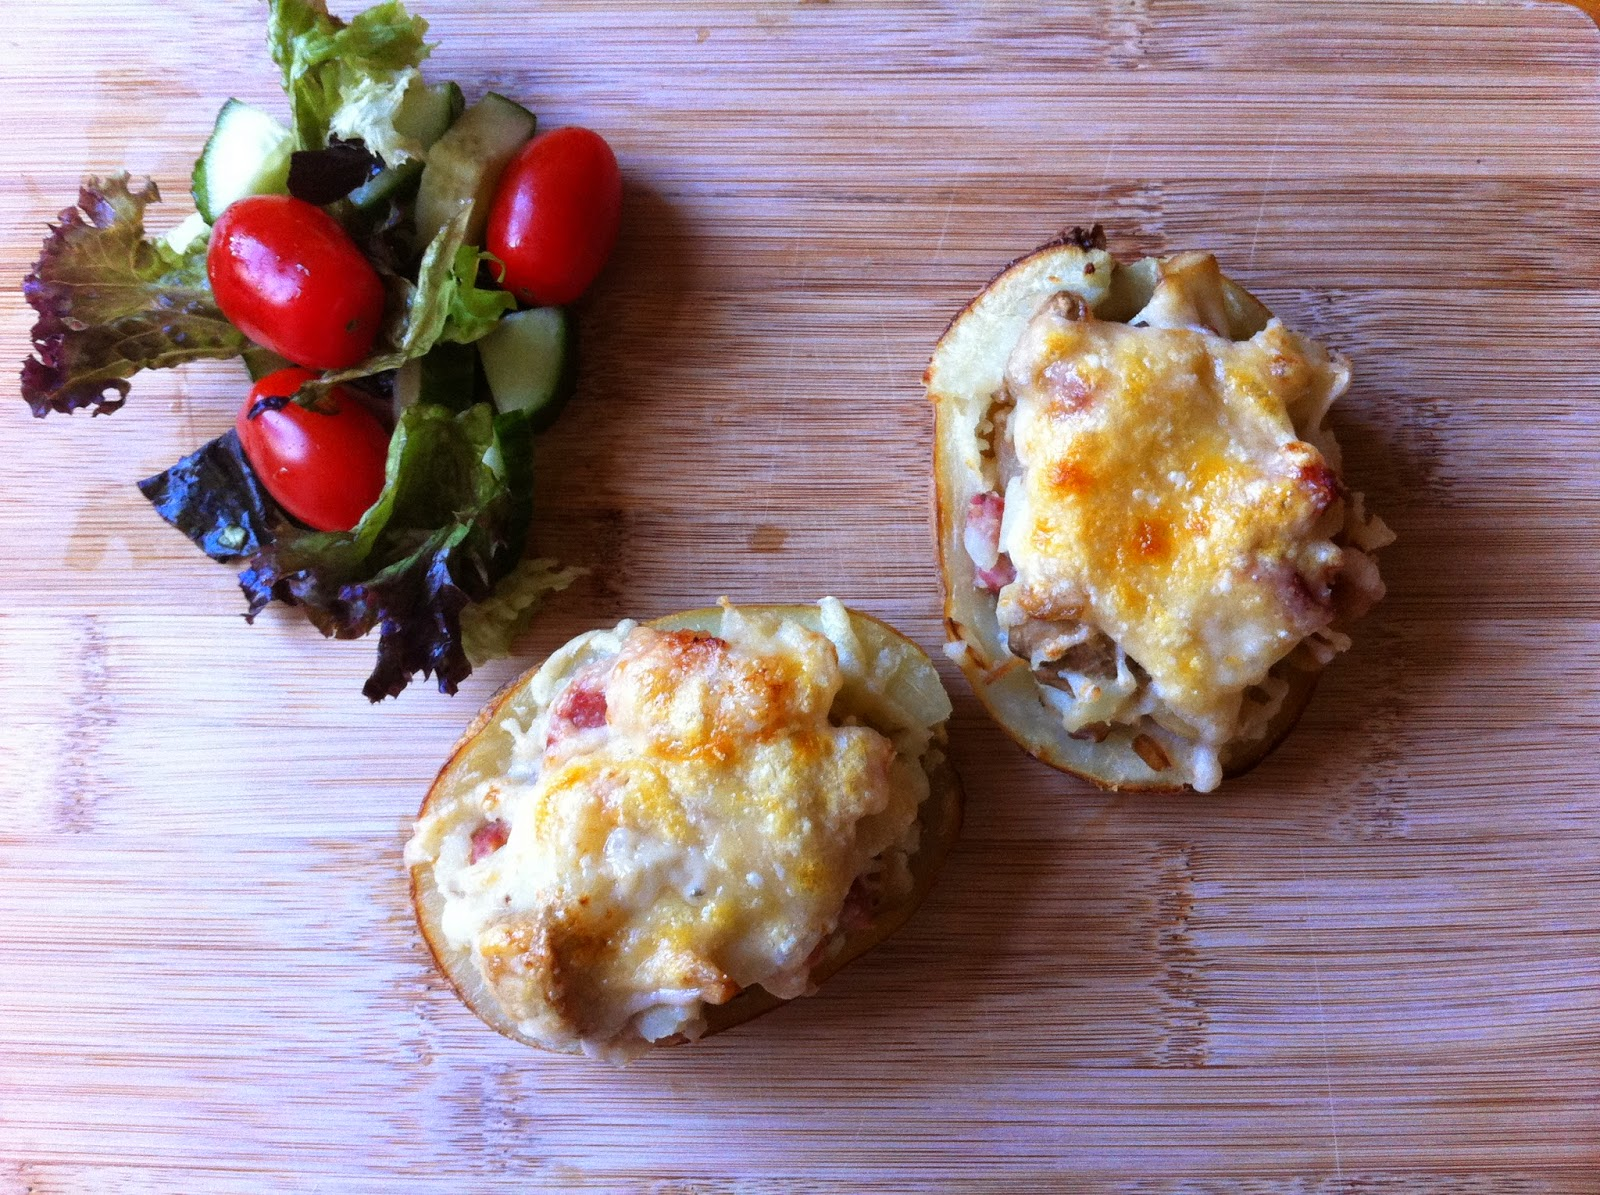 Pancetta Stuffed Jackets Served With Salad